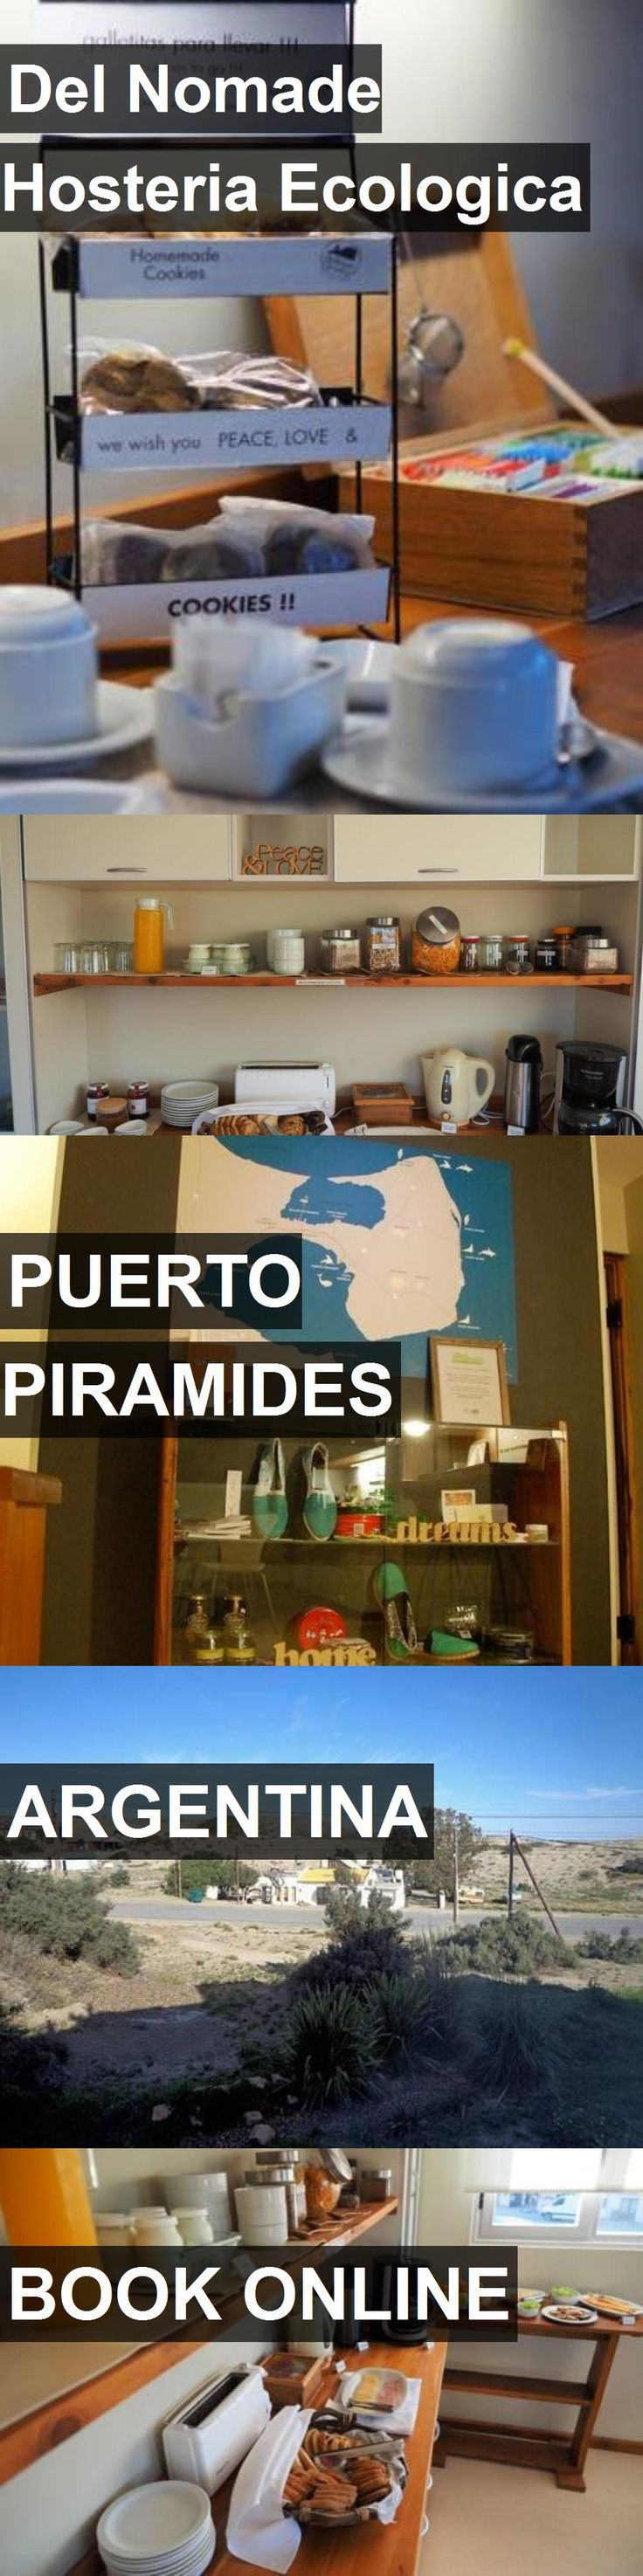 Hotel Del Nomade Hosteria Ecologica in Puerto Piramides, Argentina. For more information, photos, reviews and best prices please follow the link. #Argentina #PuertoPiramides #travel #vacation #hotel